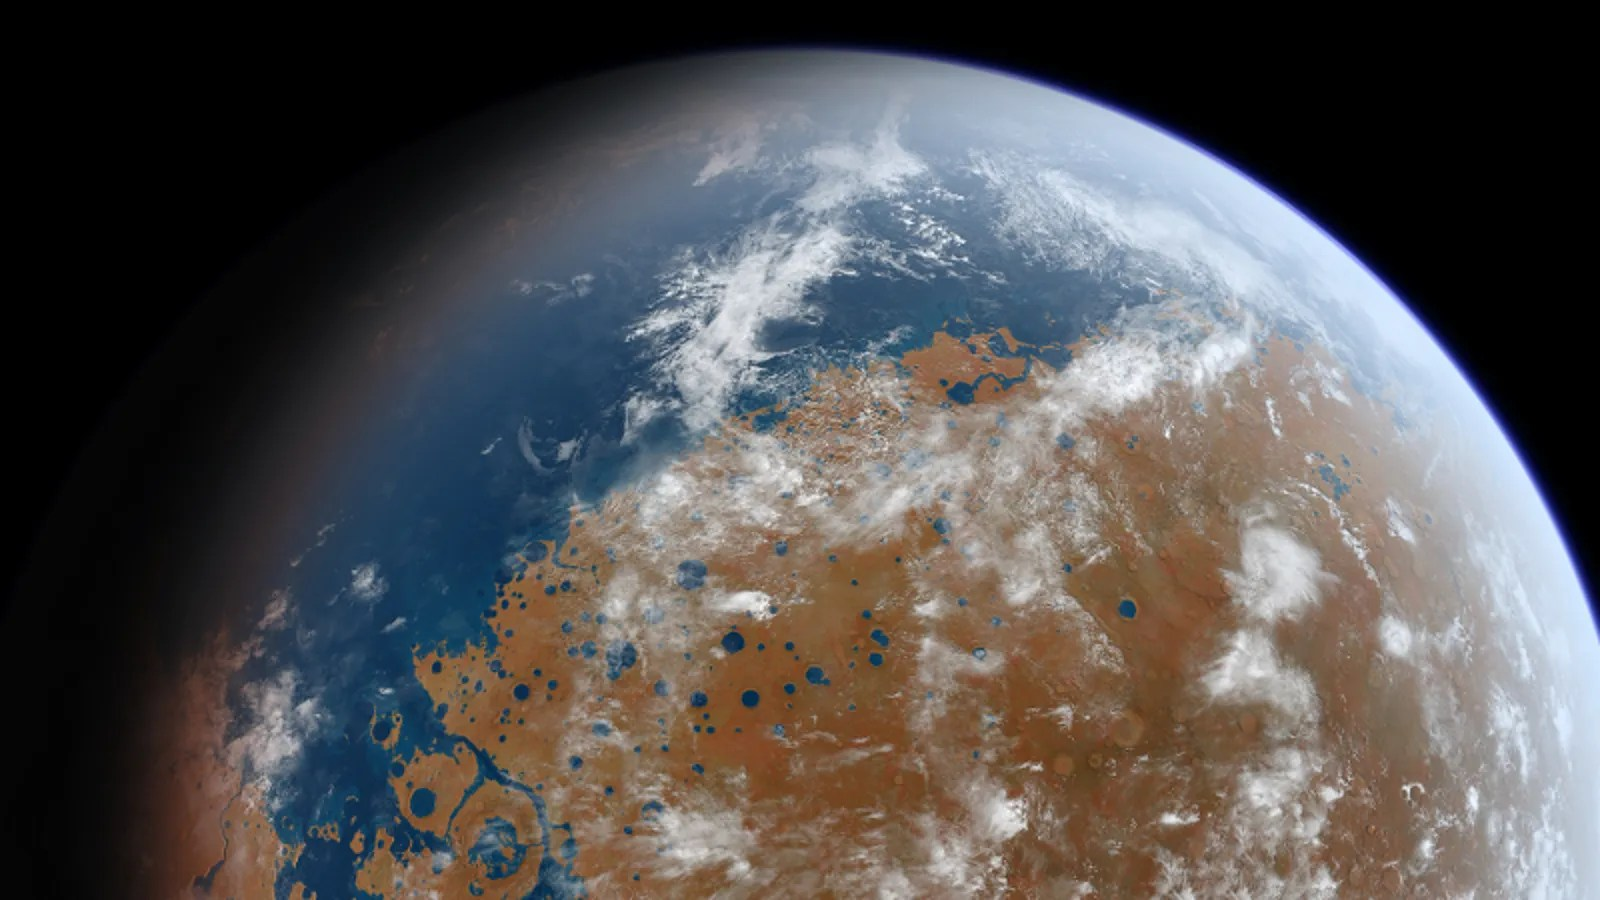 Ancient Mars Was Even More Earth Like Than We Imagined